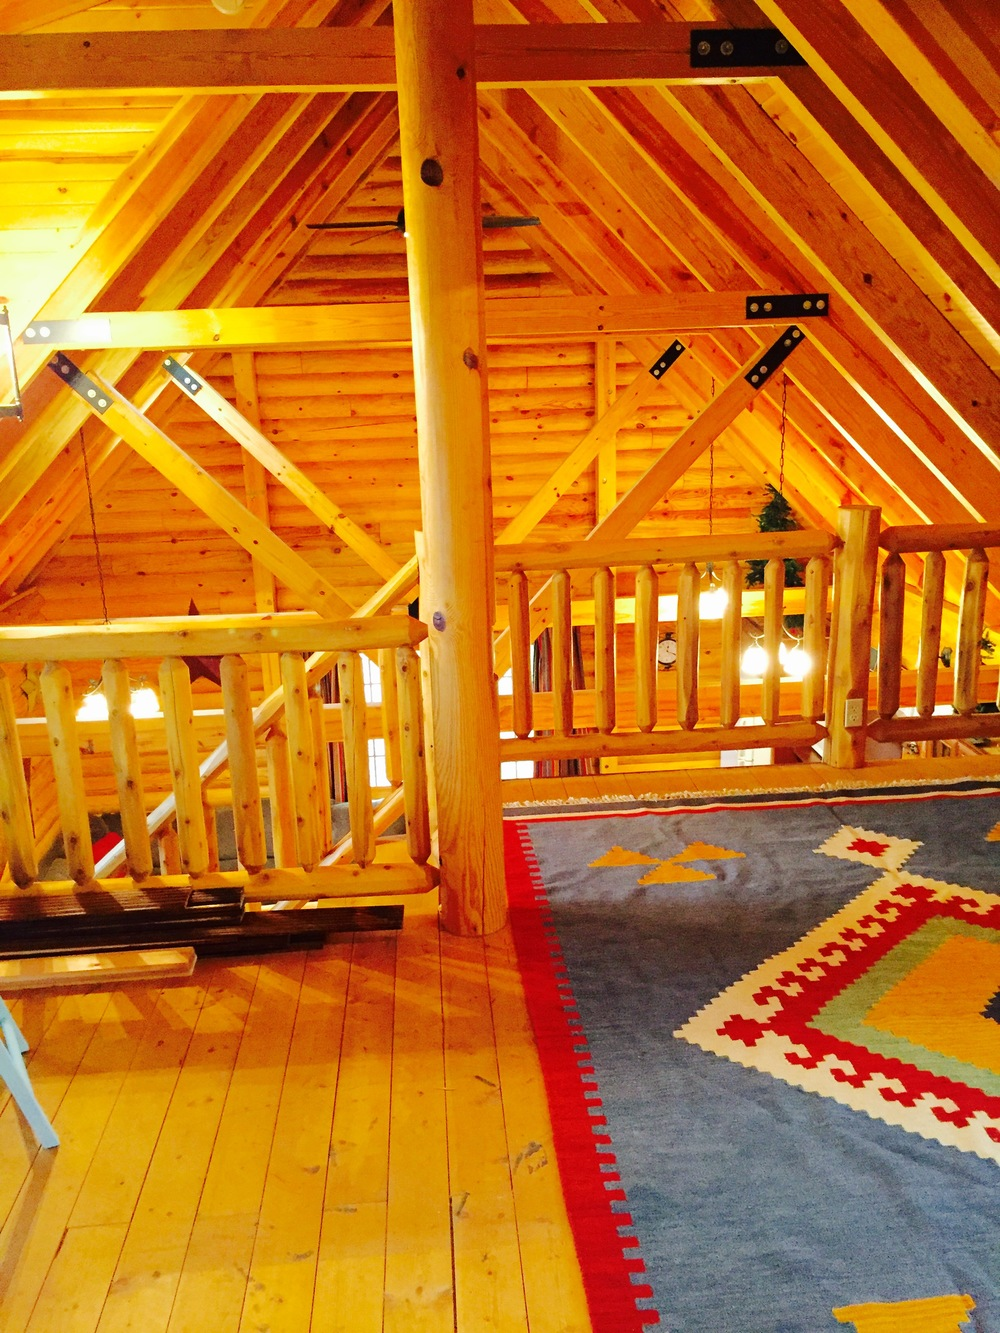 Pentwater Michigan Vacation Rental Cabin Rug and Beam View.jpg